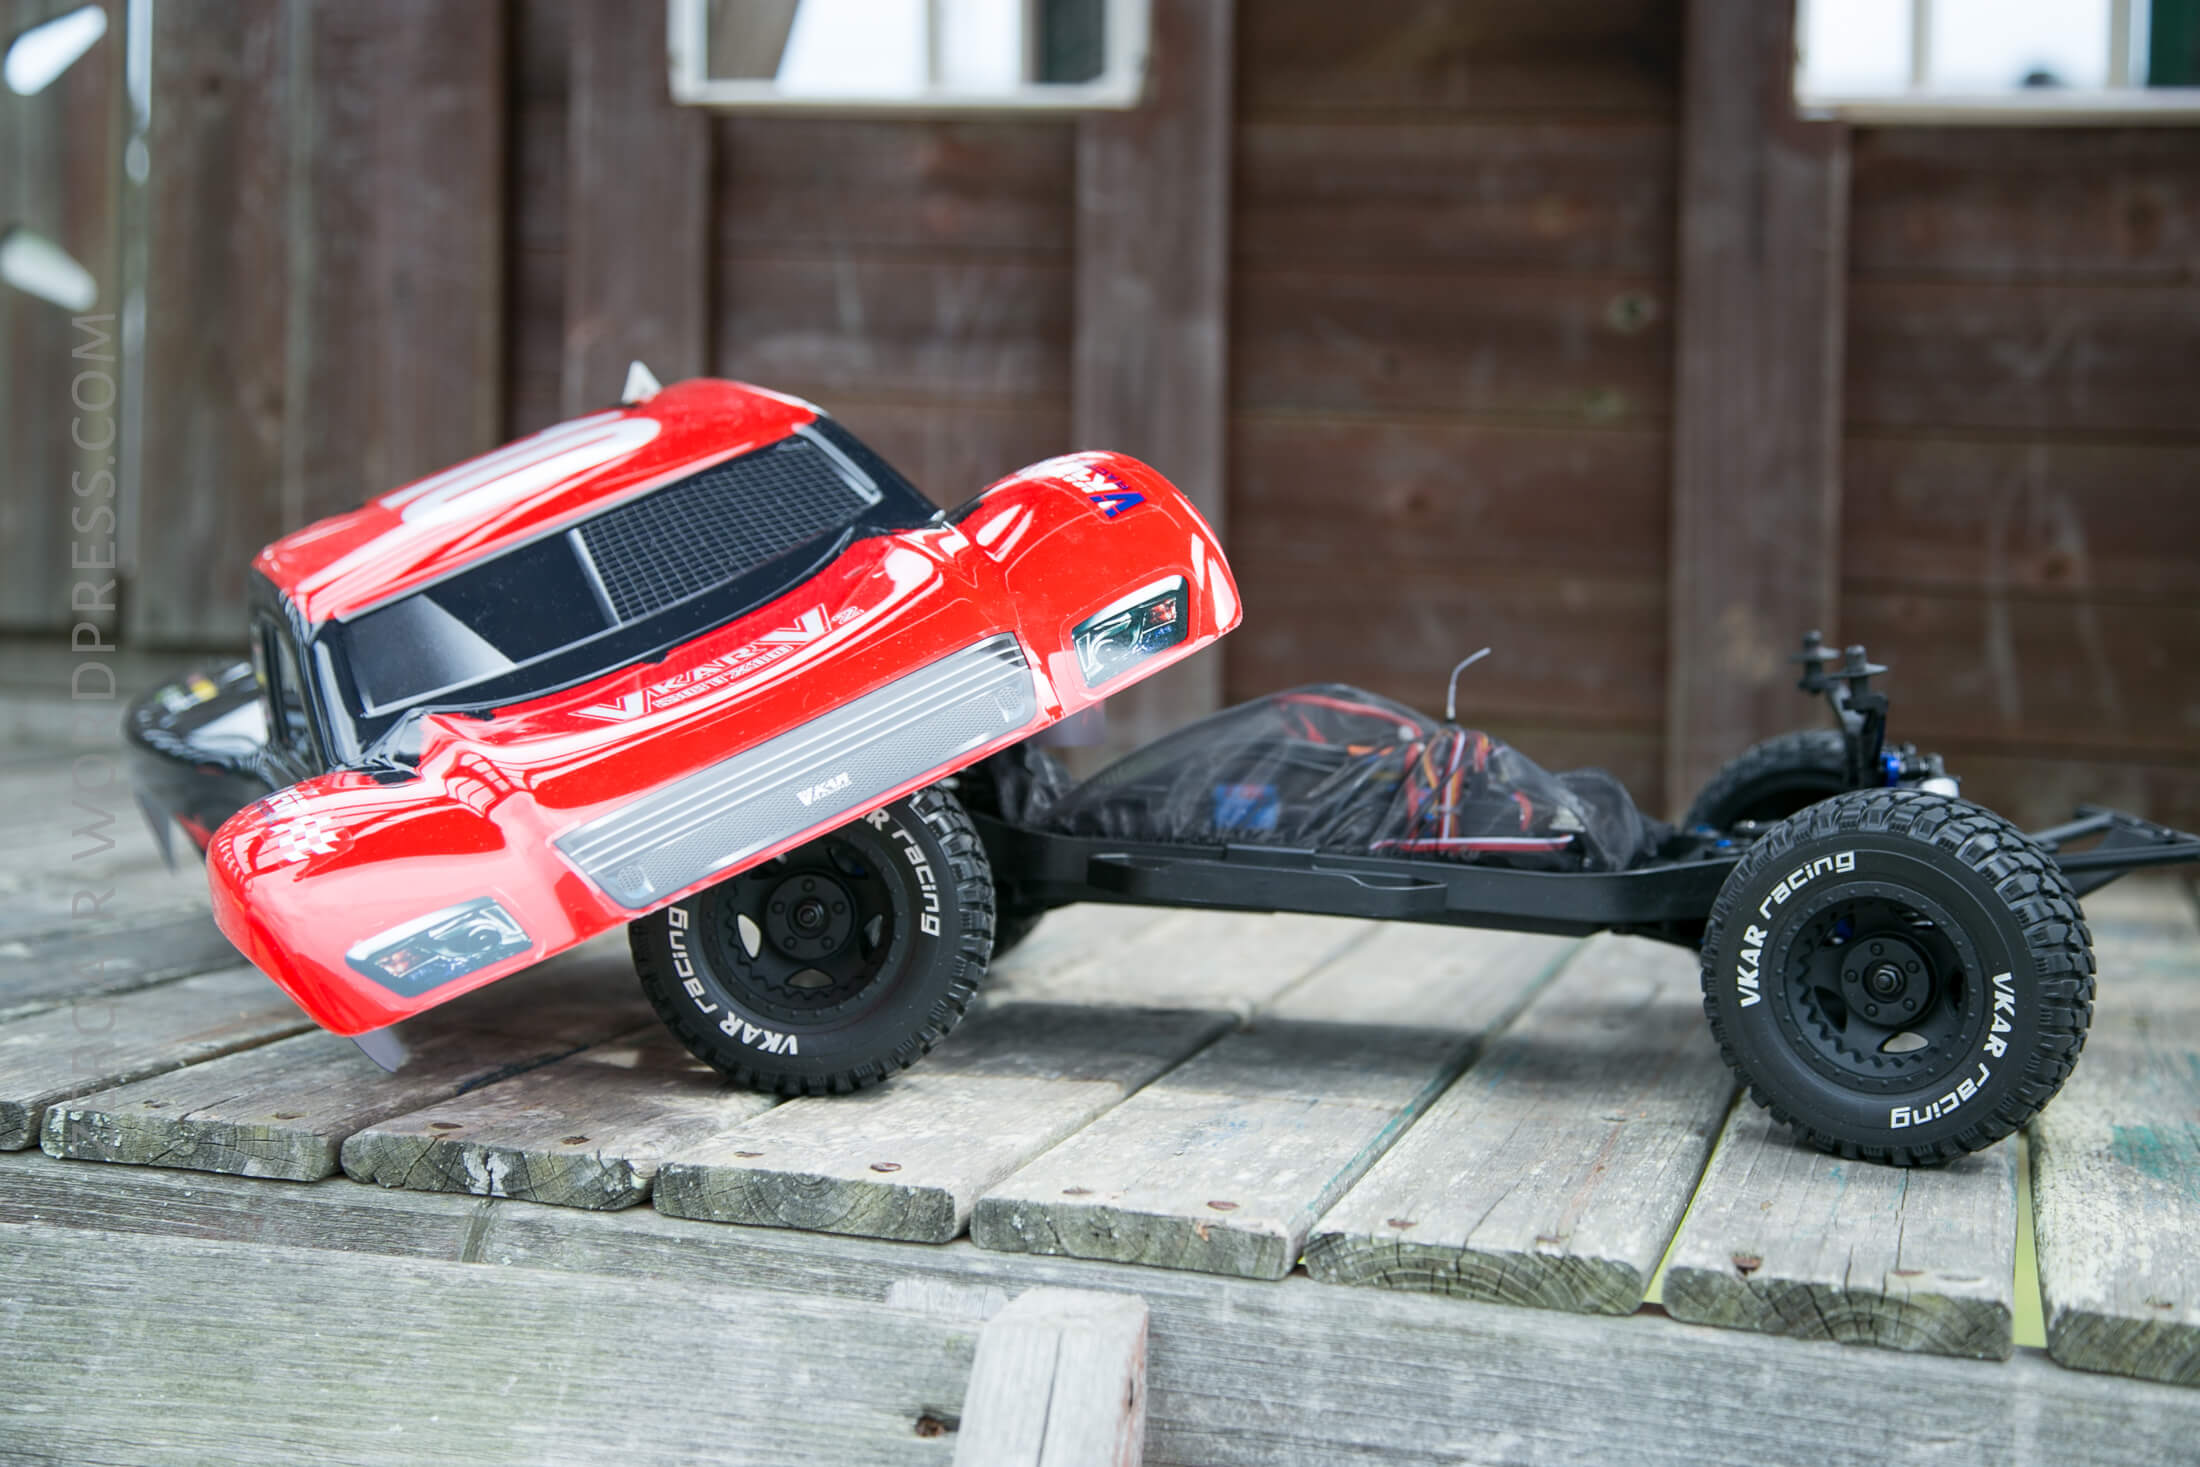 zeroair_vkar_sctx10_v2_rc_car_scale-34.jpg